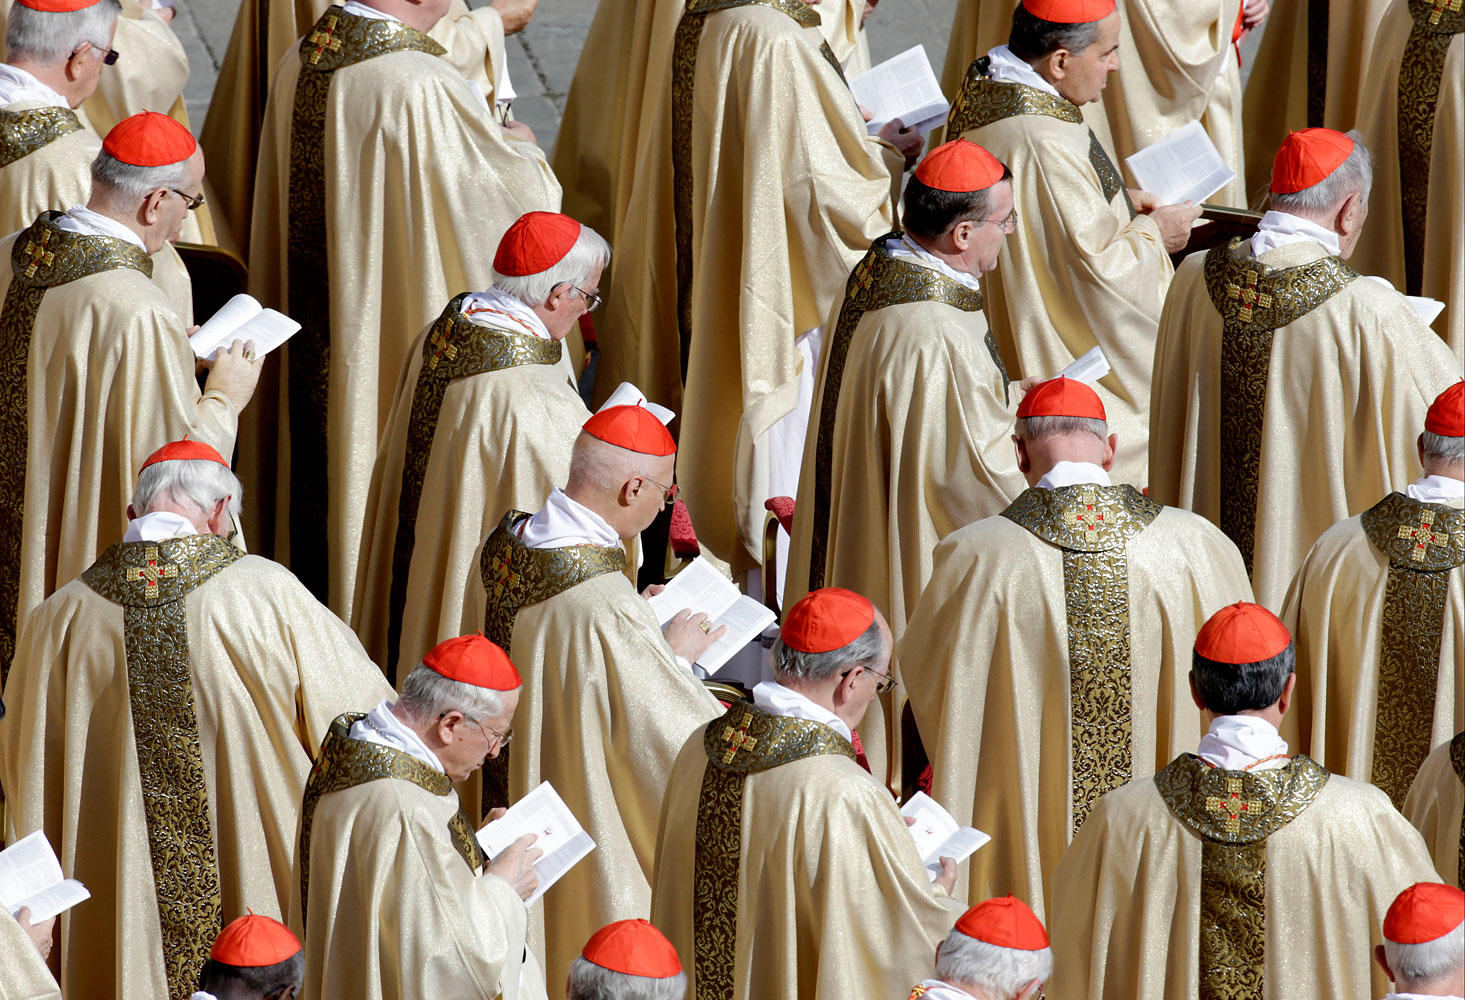 Cardinals attend Pope Francis' inaugural Mass in St. Peter's Square at the Vatican, in 2013.